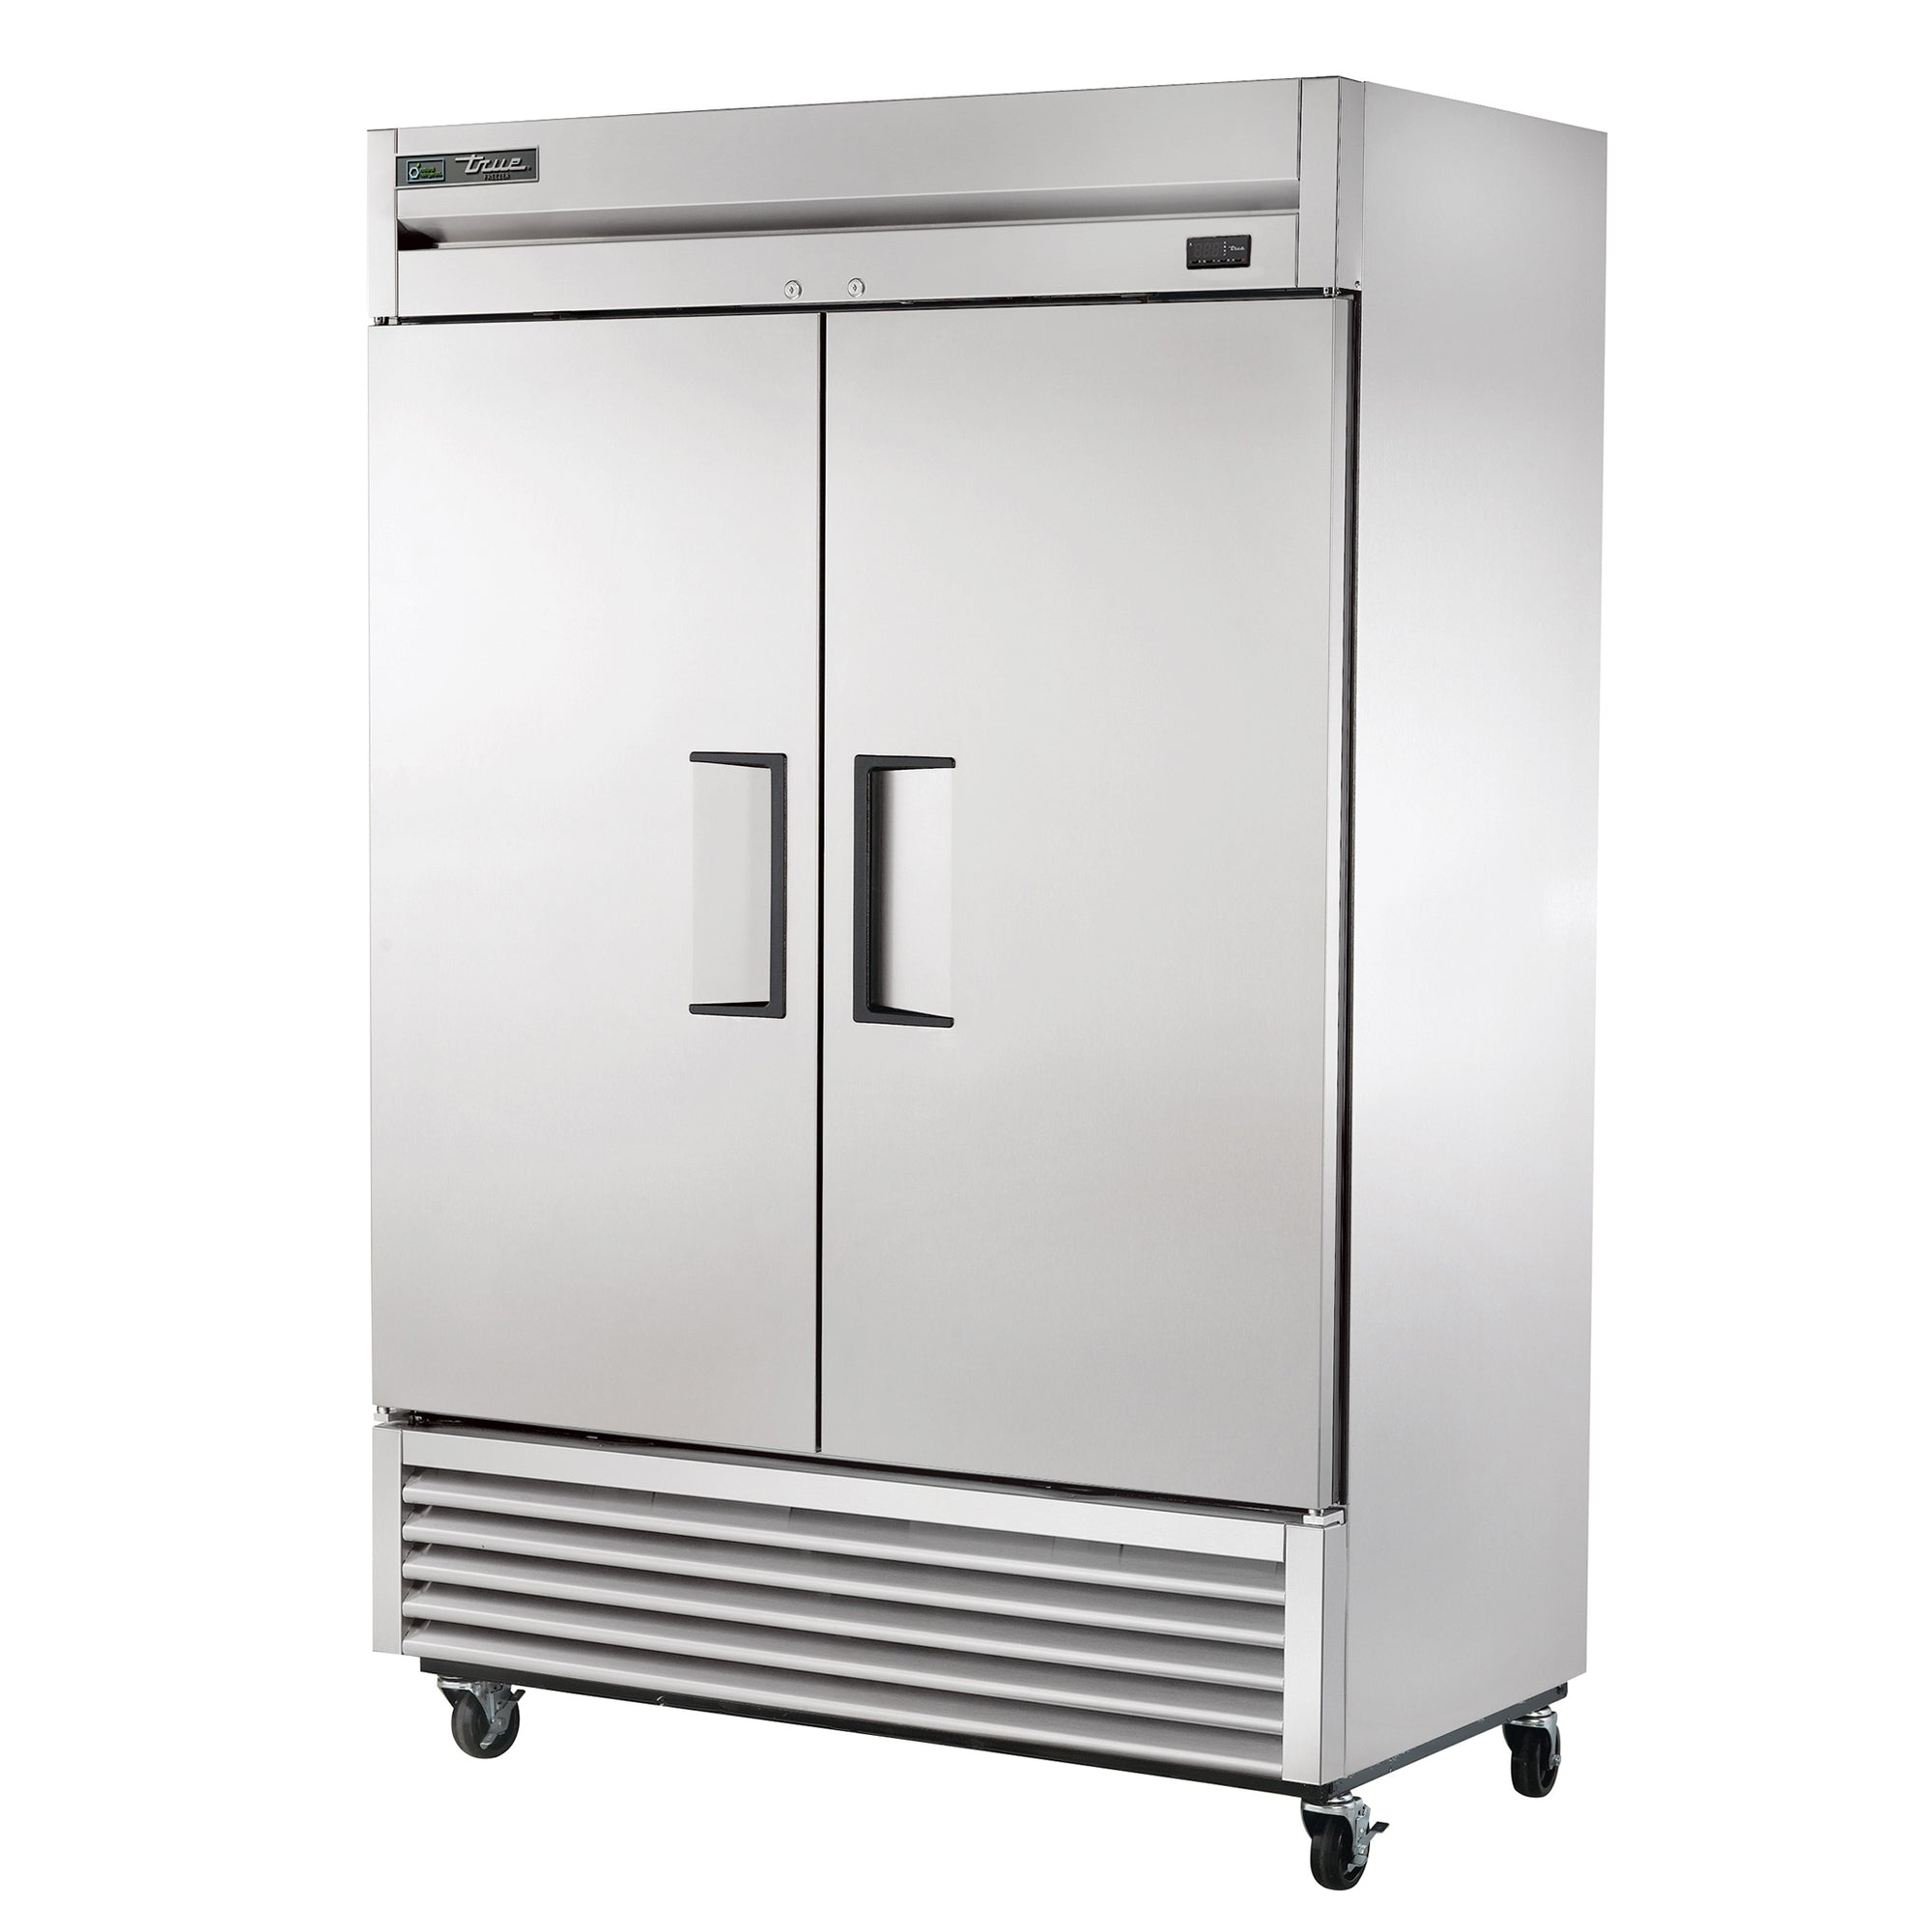 914 Ltr Solid Door Freezer - T-49F-HC